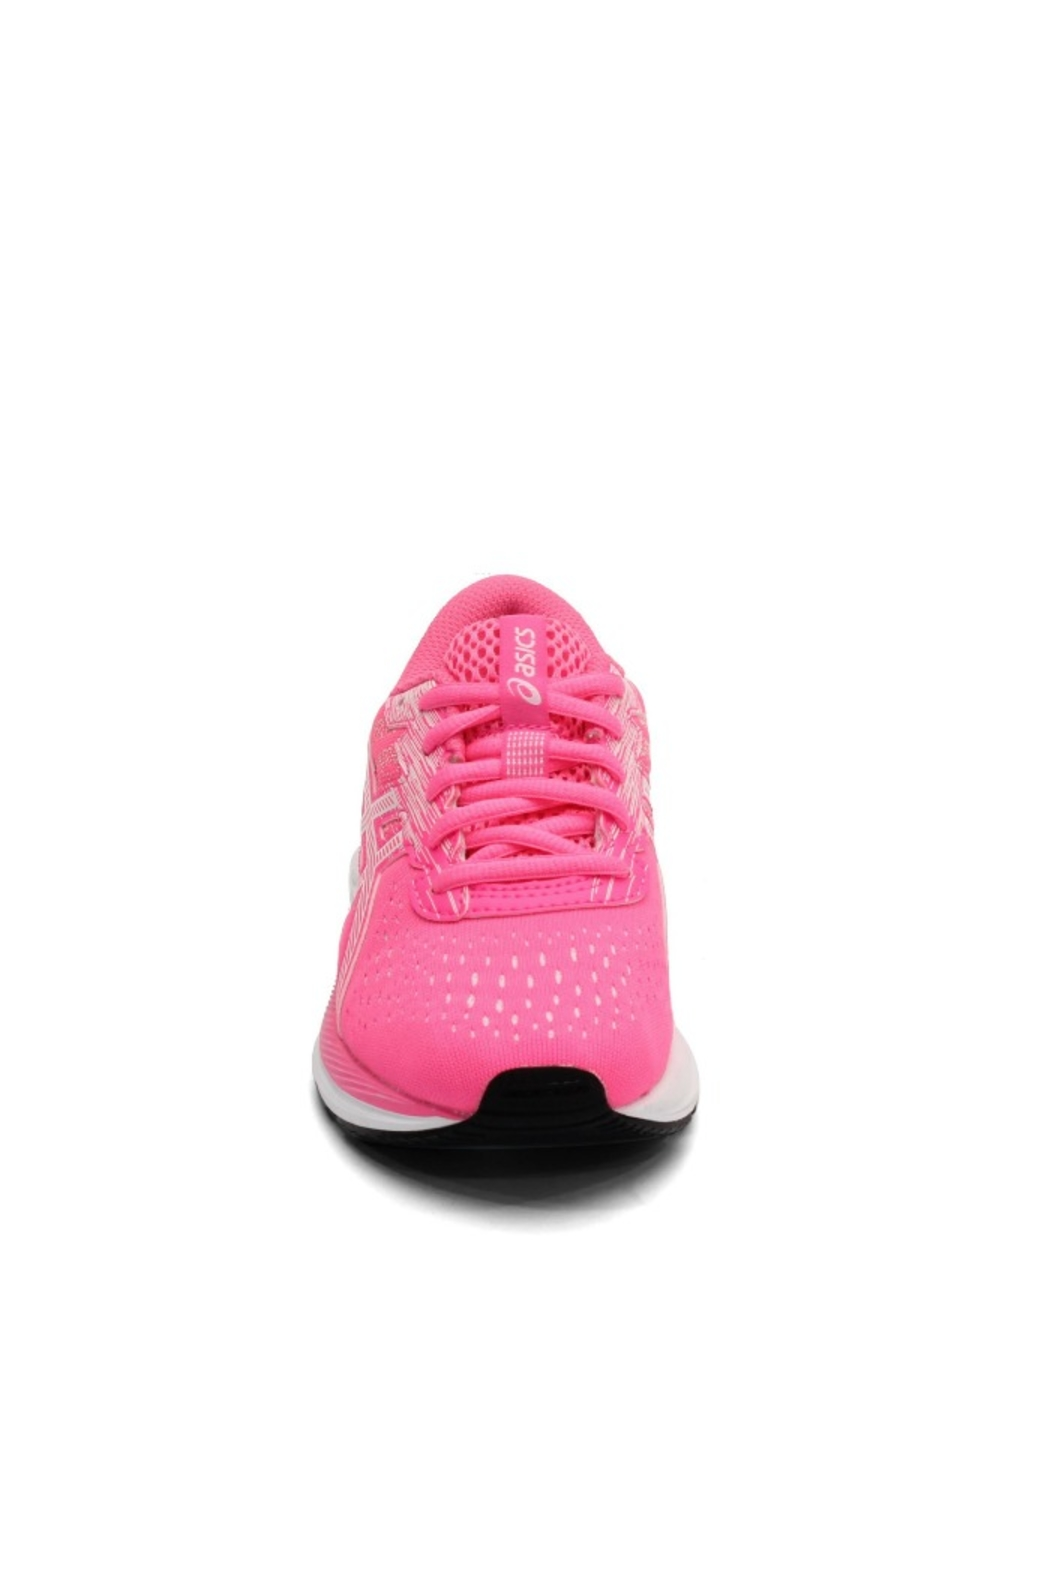 Asics Gel Excite 7 GS in Hot Pink/White - Side Cropped Image